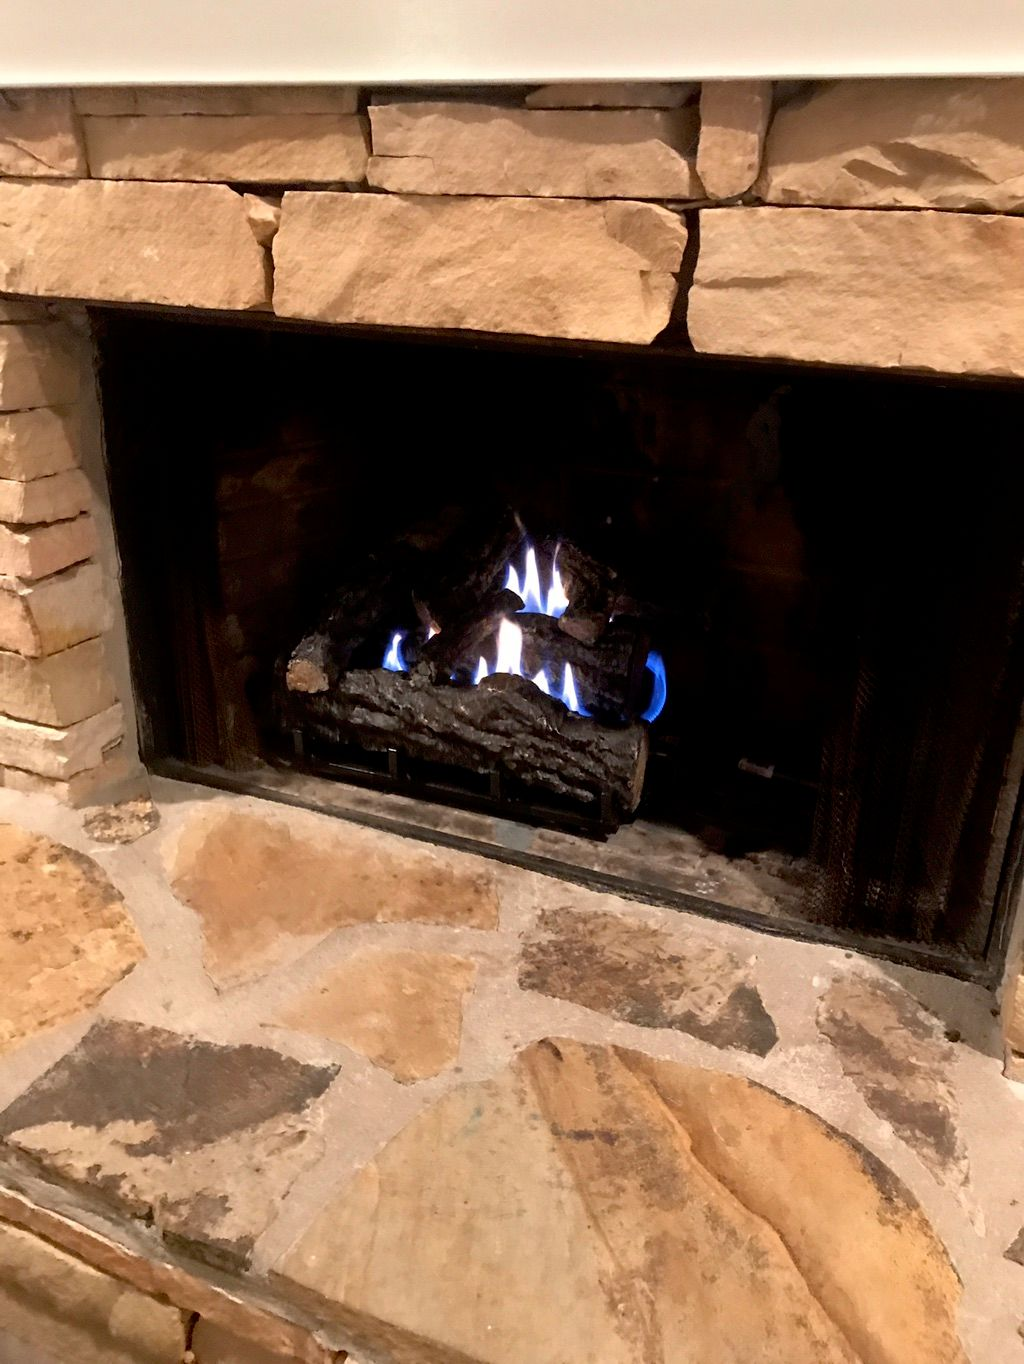 Fireplace and Chimney Cleaning or Repair - Marietta 2019